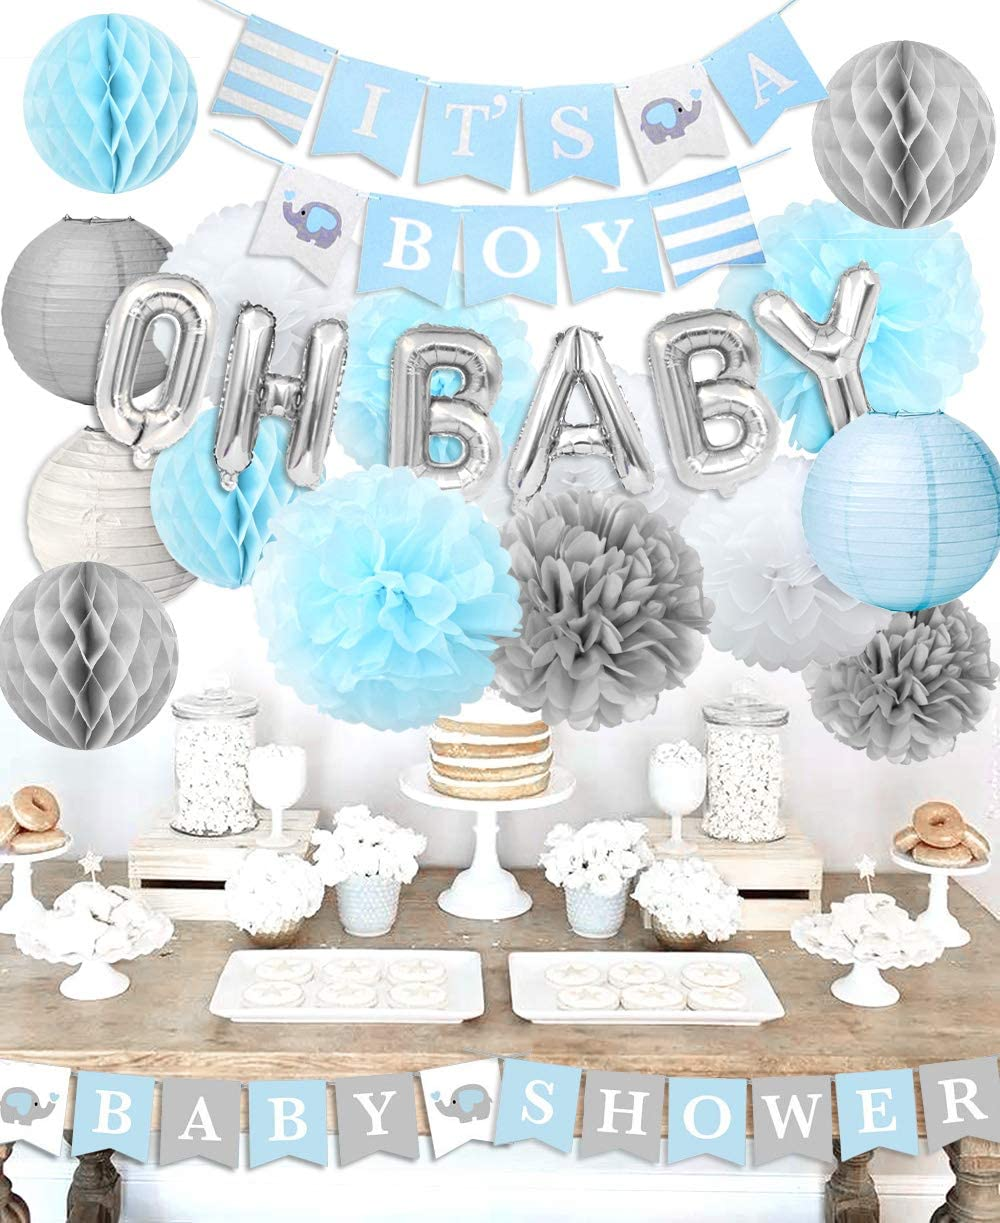 Baby Shower Decorations It S A Boy Baby Shower Decorations Kit With Balloons It S A Boy Baby Shower Banner Amazon Ca Home Kitchen